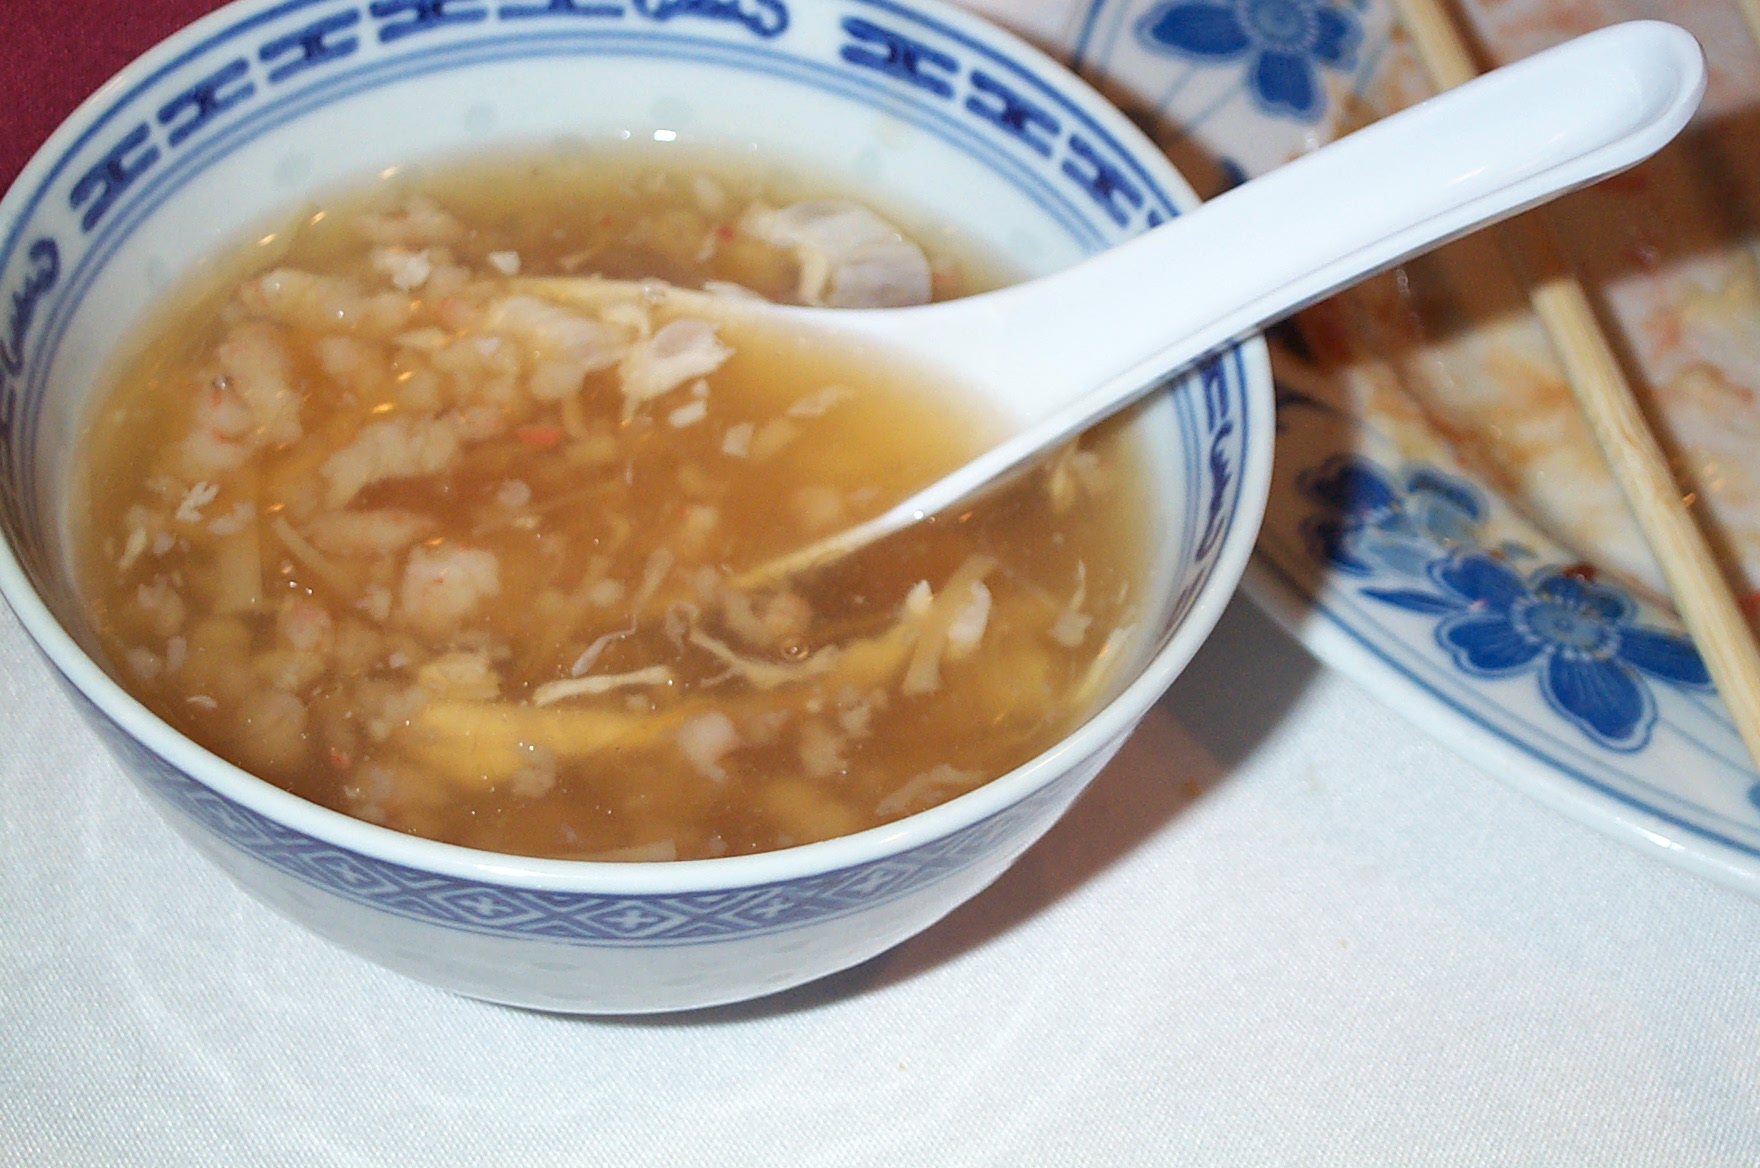 Bird's_Nest_soup.jpg